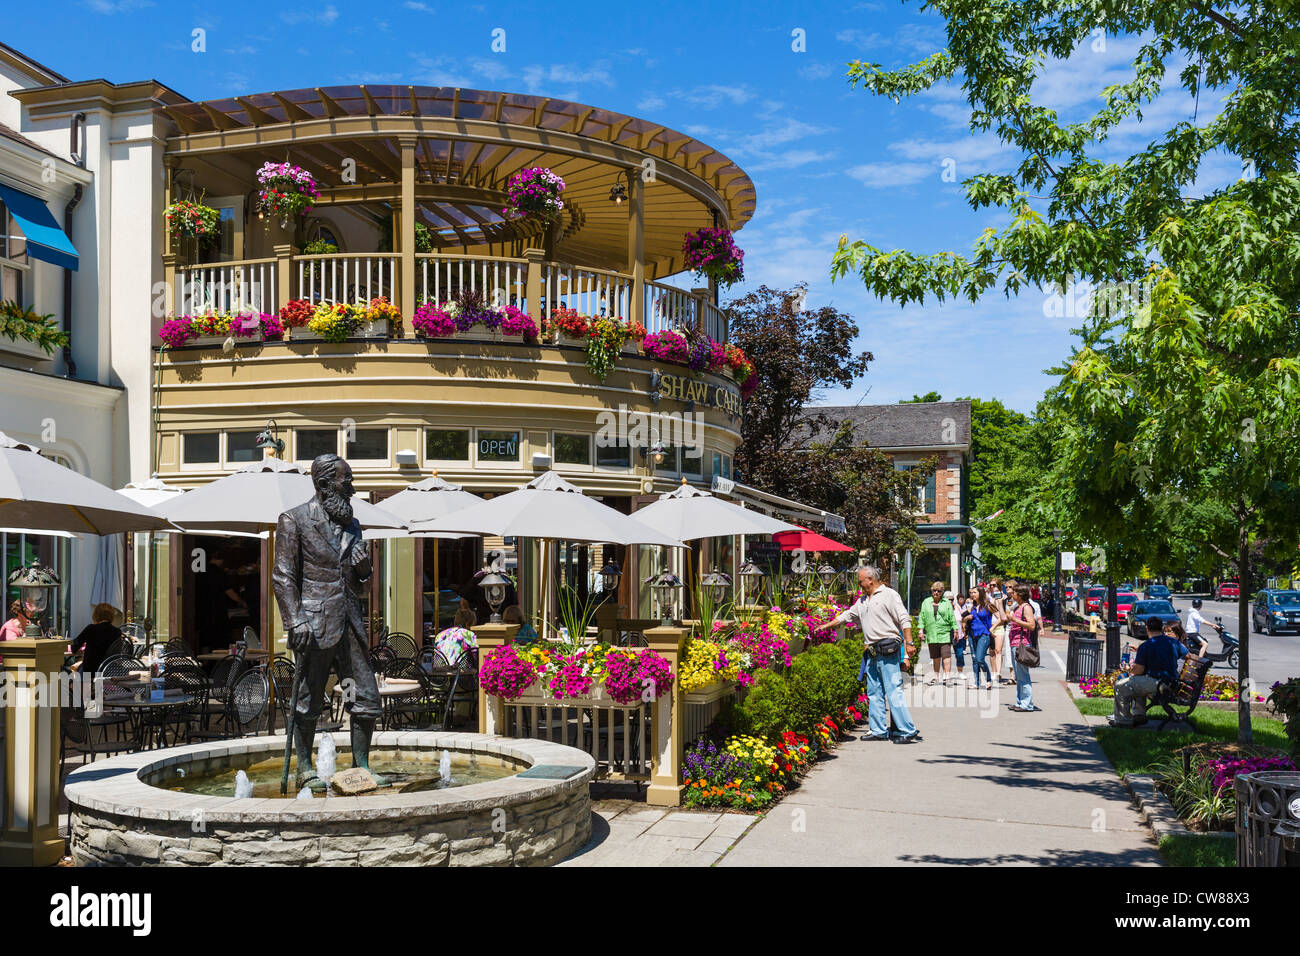 Statue of George Bernard Shaw outside the Shaw Cafe on Queen Street, Niagara-on-the-Lake, Ontario, Canada - Stock Image